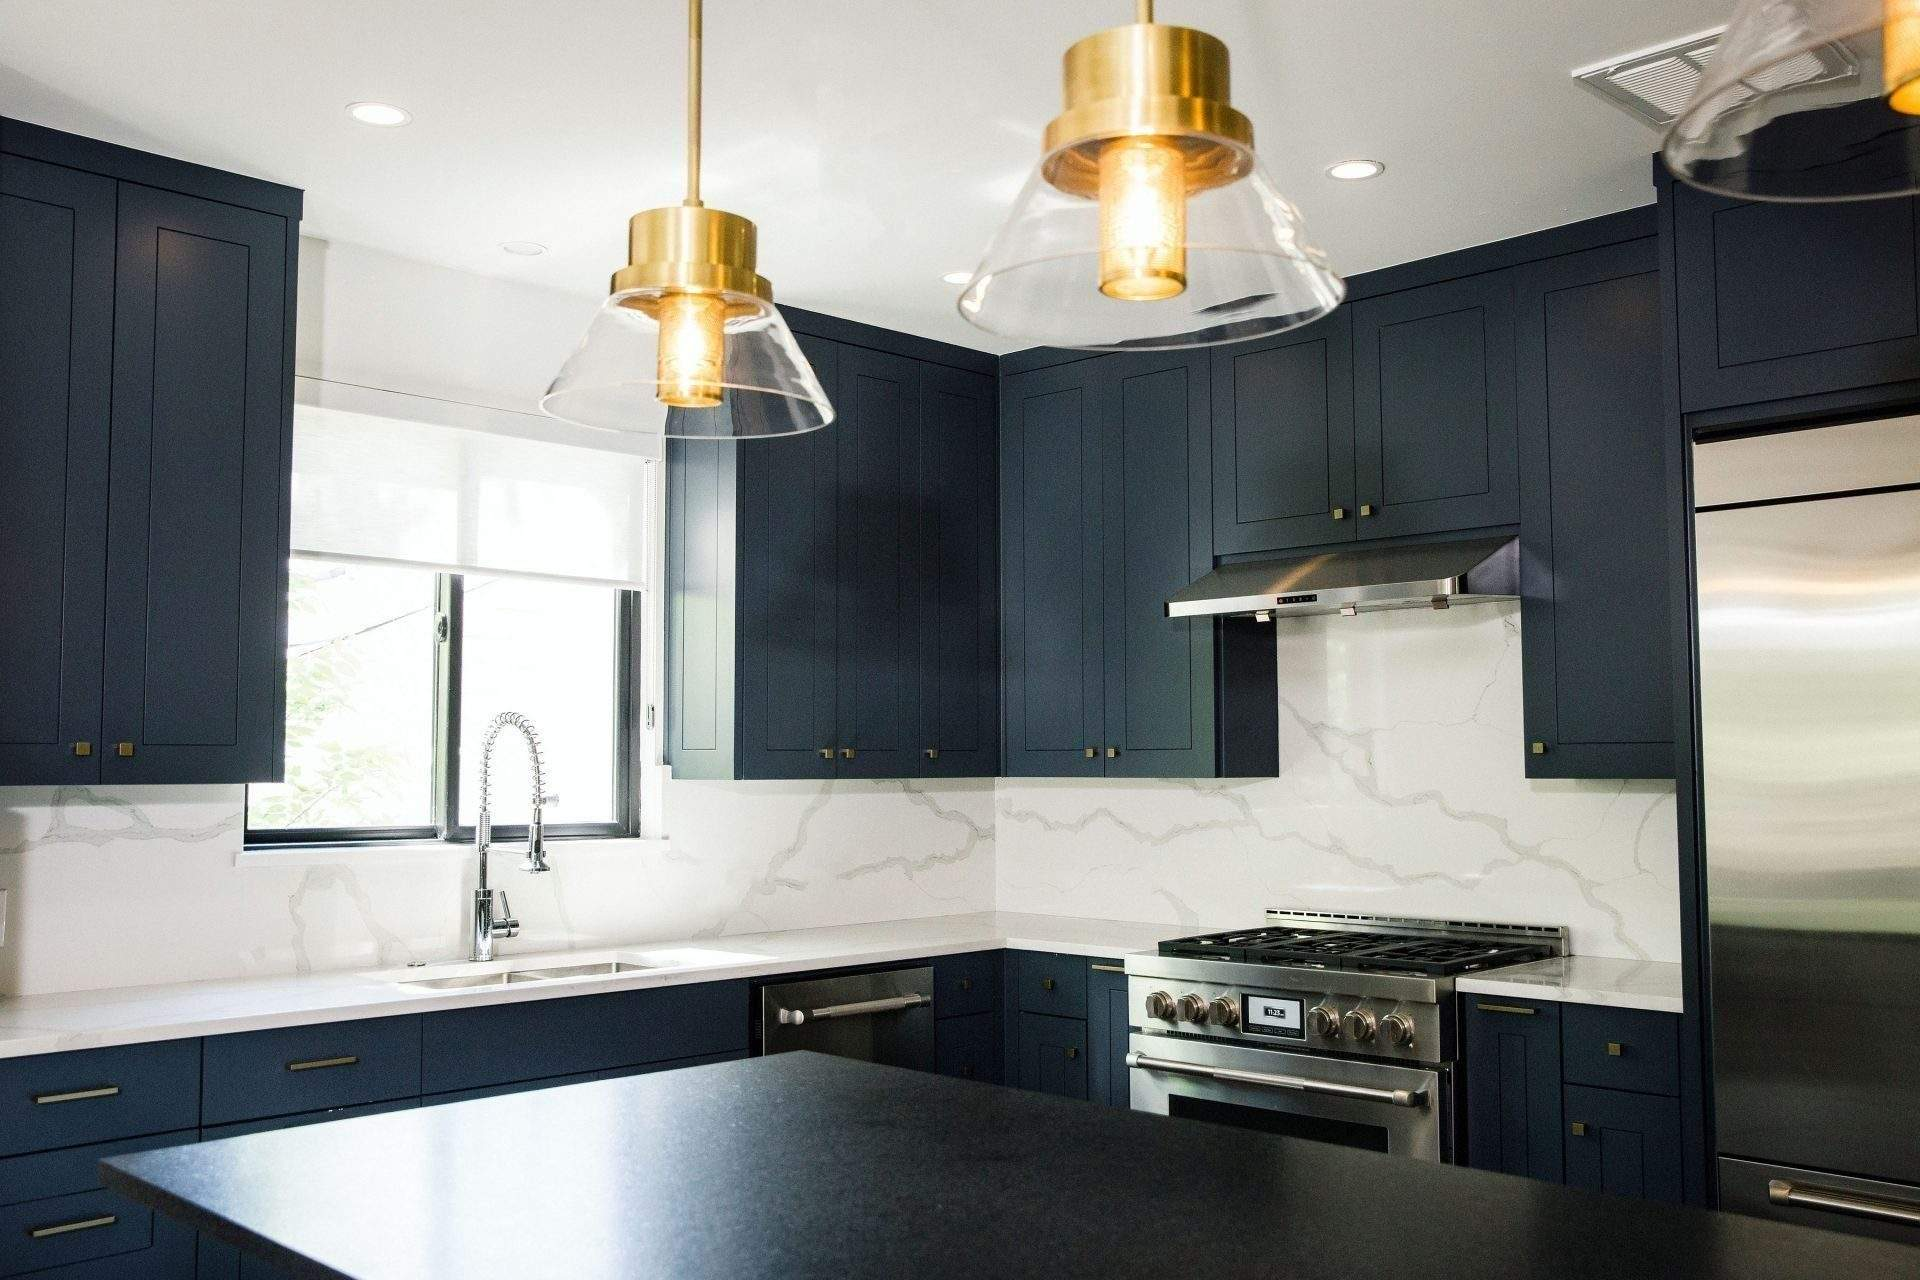 Etch Design Group | a remodel in the Zilker neighborhood with unique wall coverings and modern aesthetic. | austin, texas